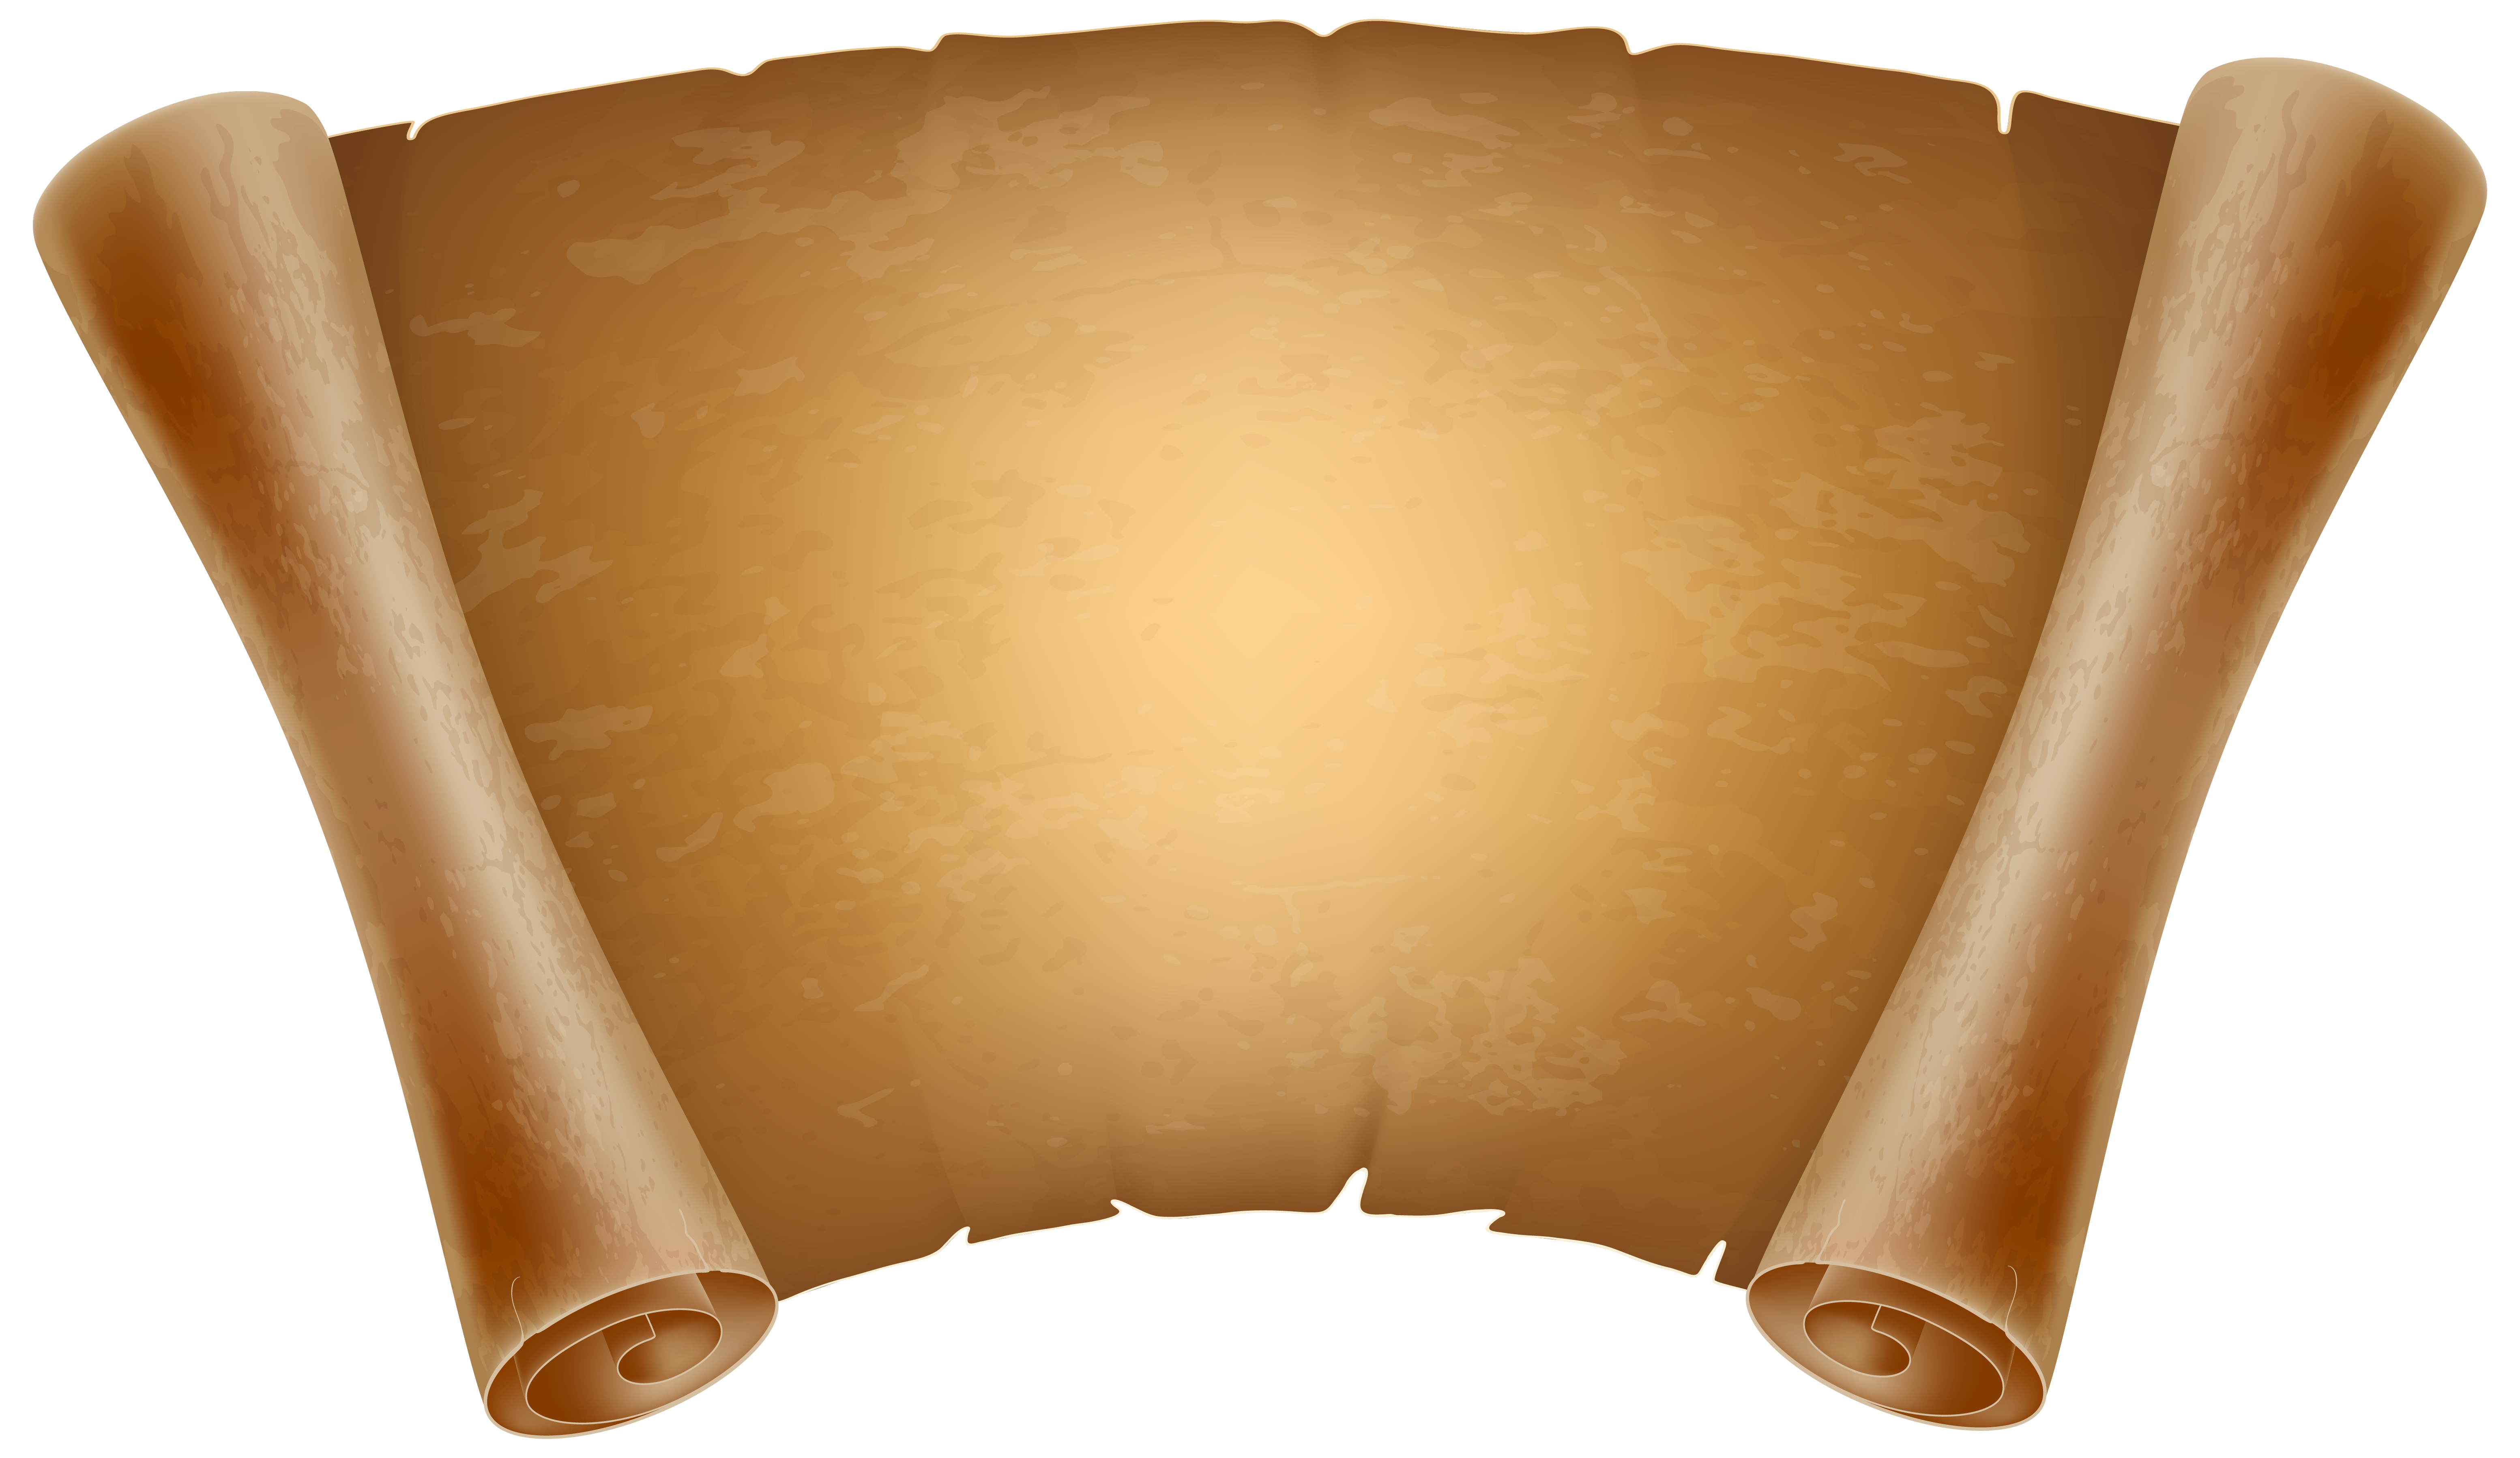 Old papyrus decorative png. Scroll clipart ancient scroll